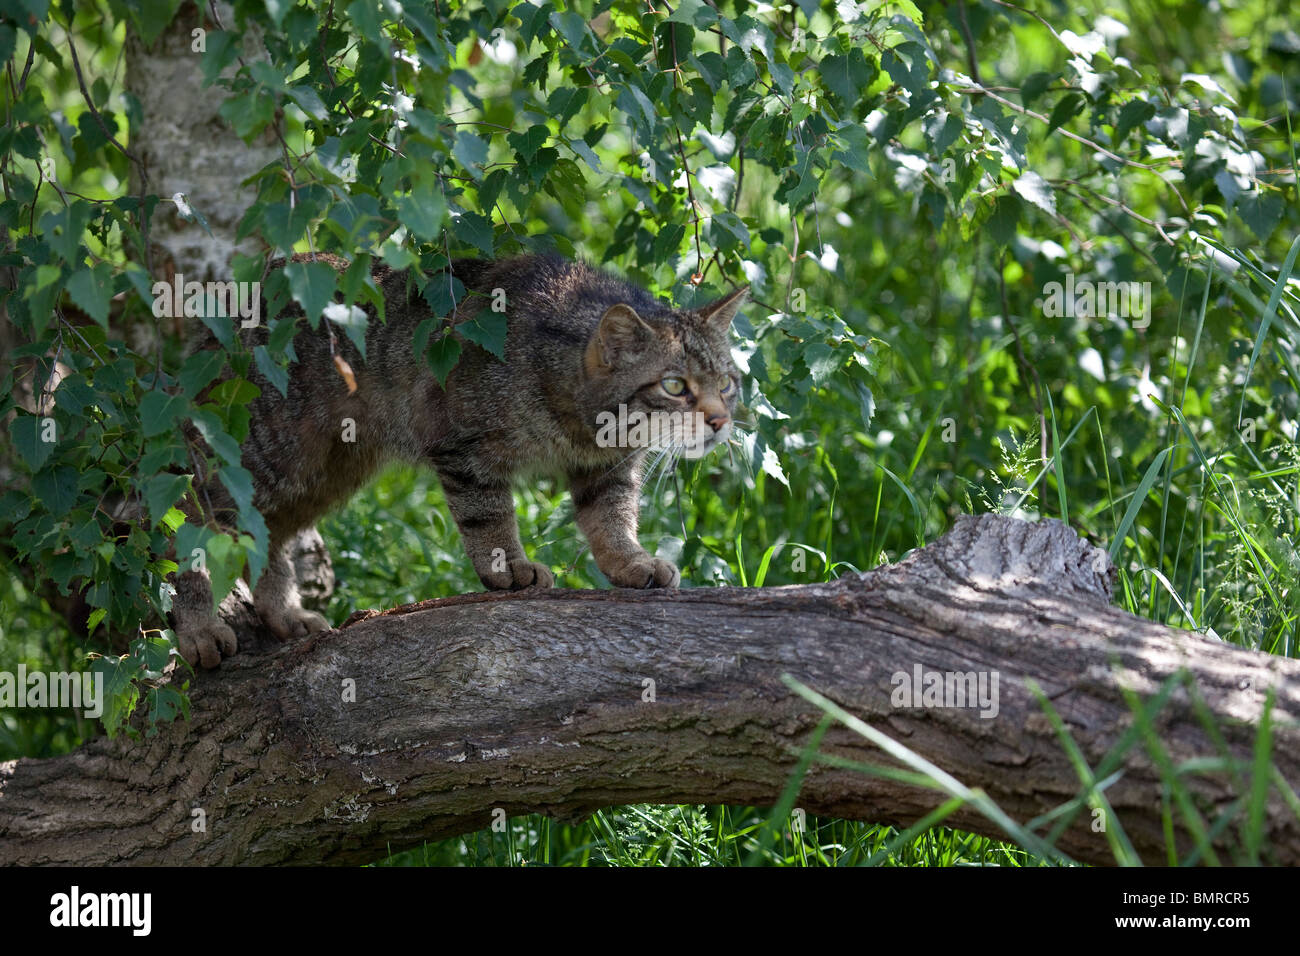 Scottish Wildcat  Felis sylvestris  stalking along a tree branch in undergrowth taken under controlled conditions Stock Photo